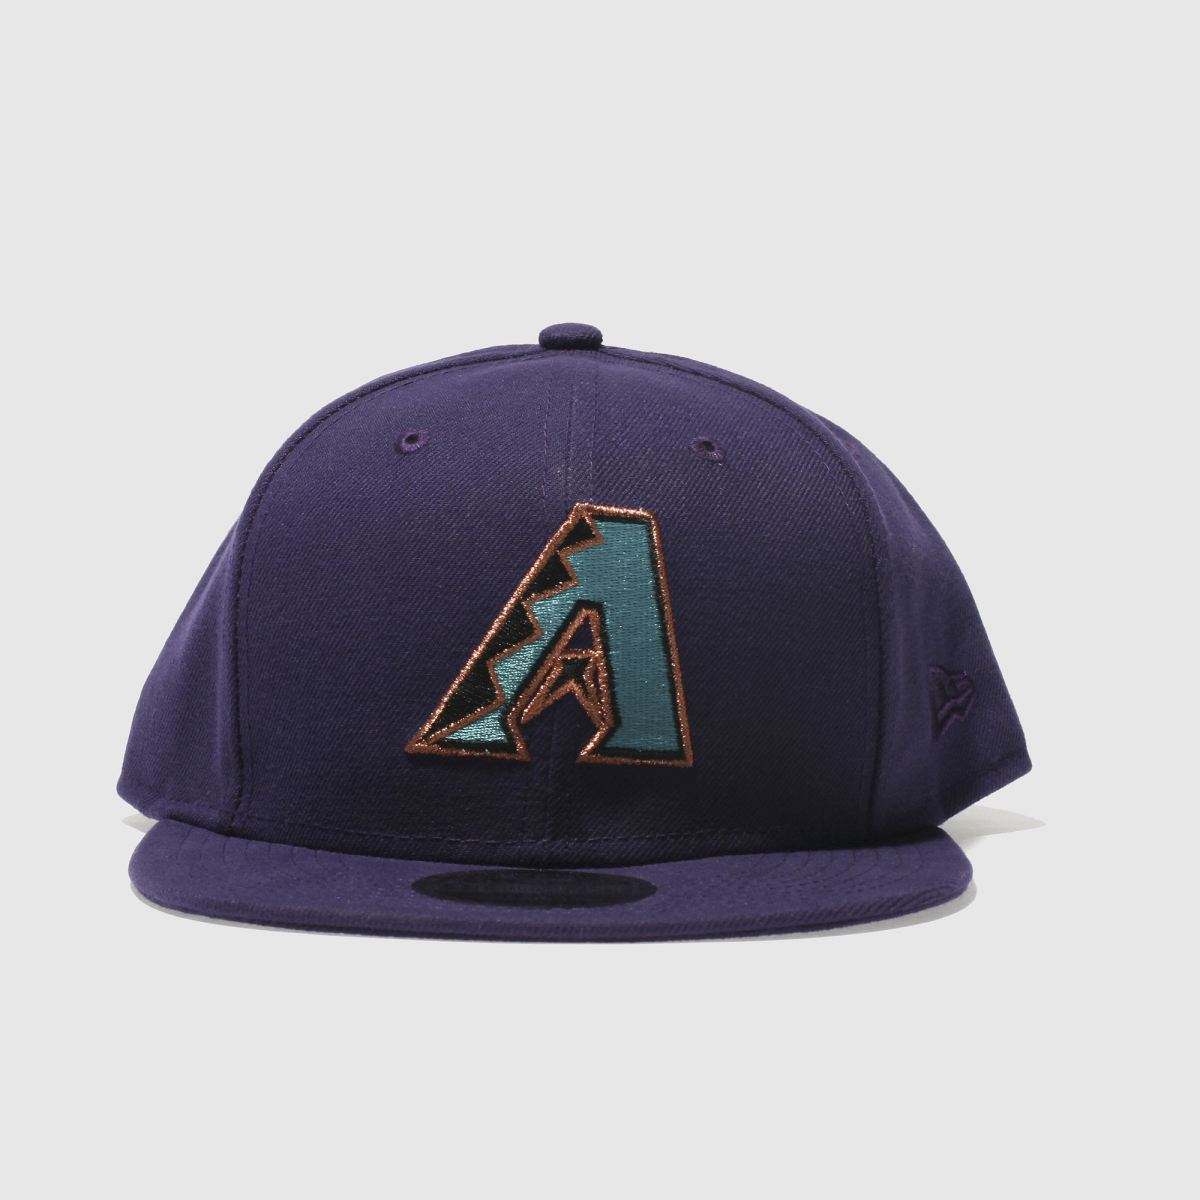 New Era New Era Purple Coast To Coast Trucker 9fifty